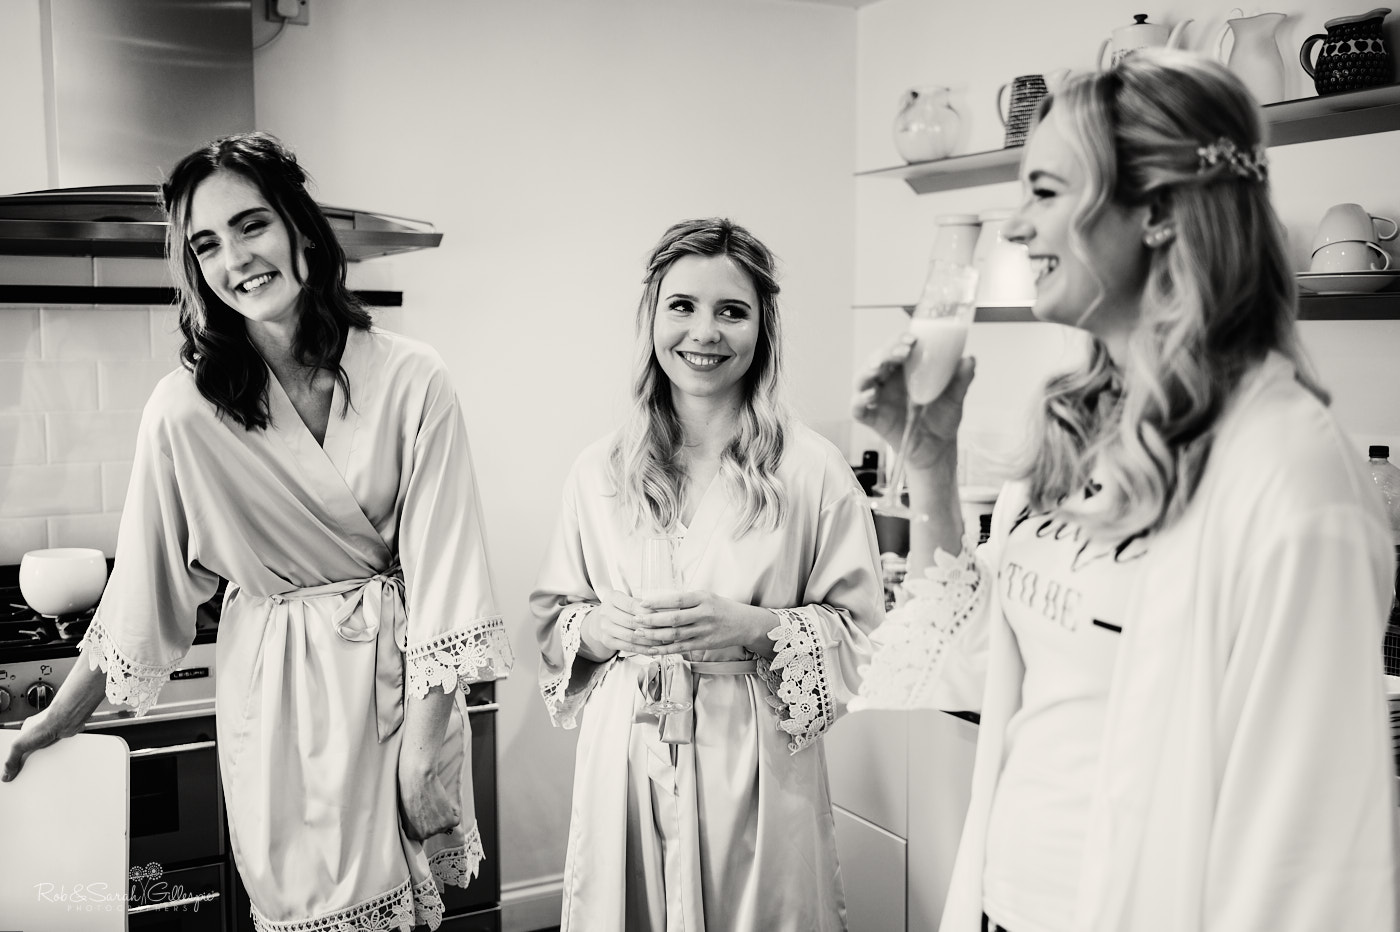 Bride and bridesmaids chat as they prepare for wedding